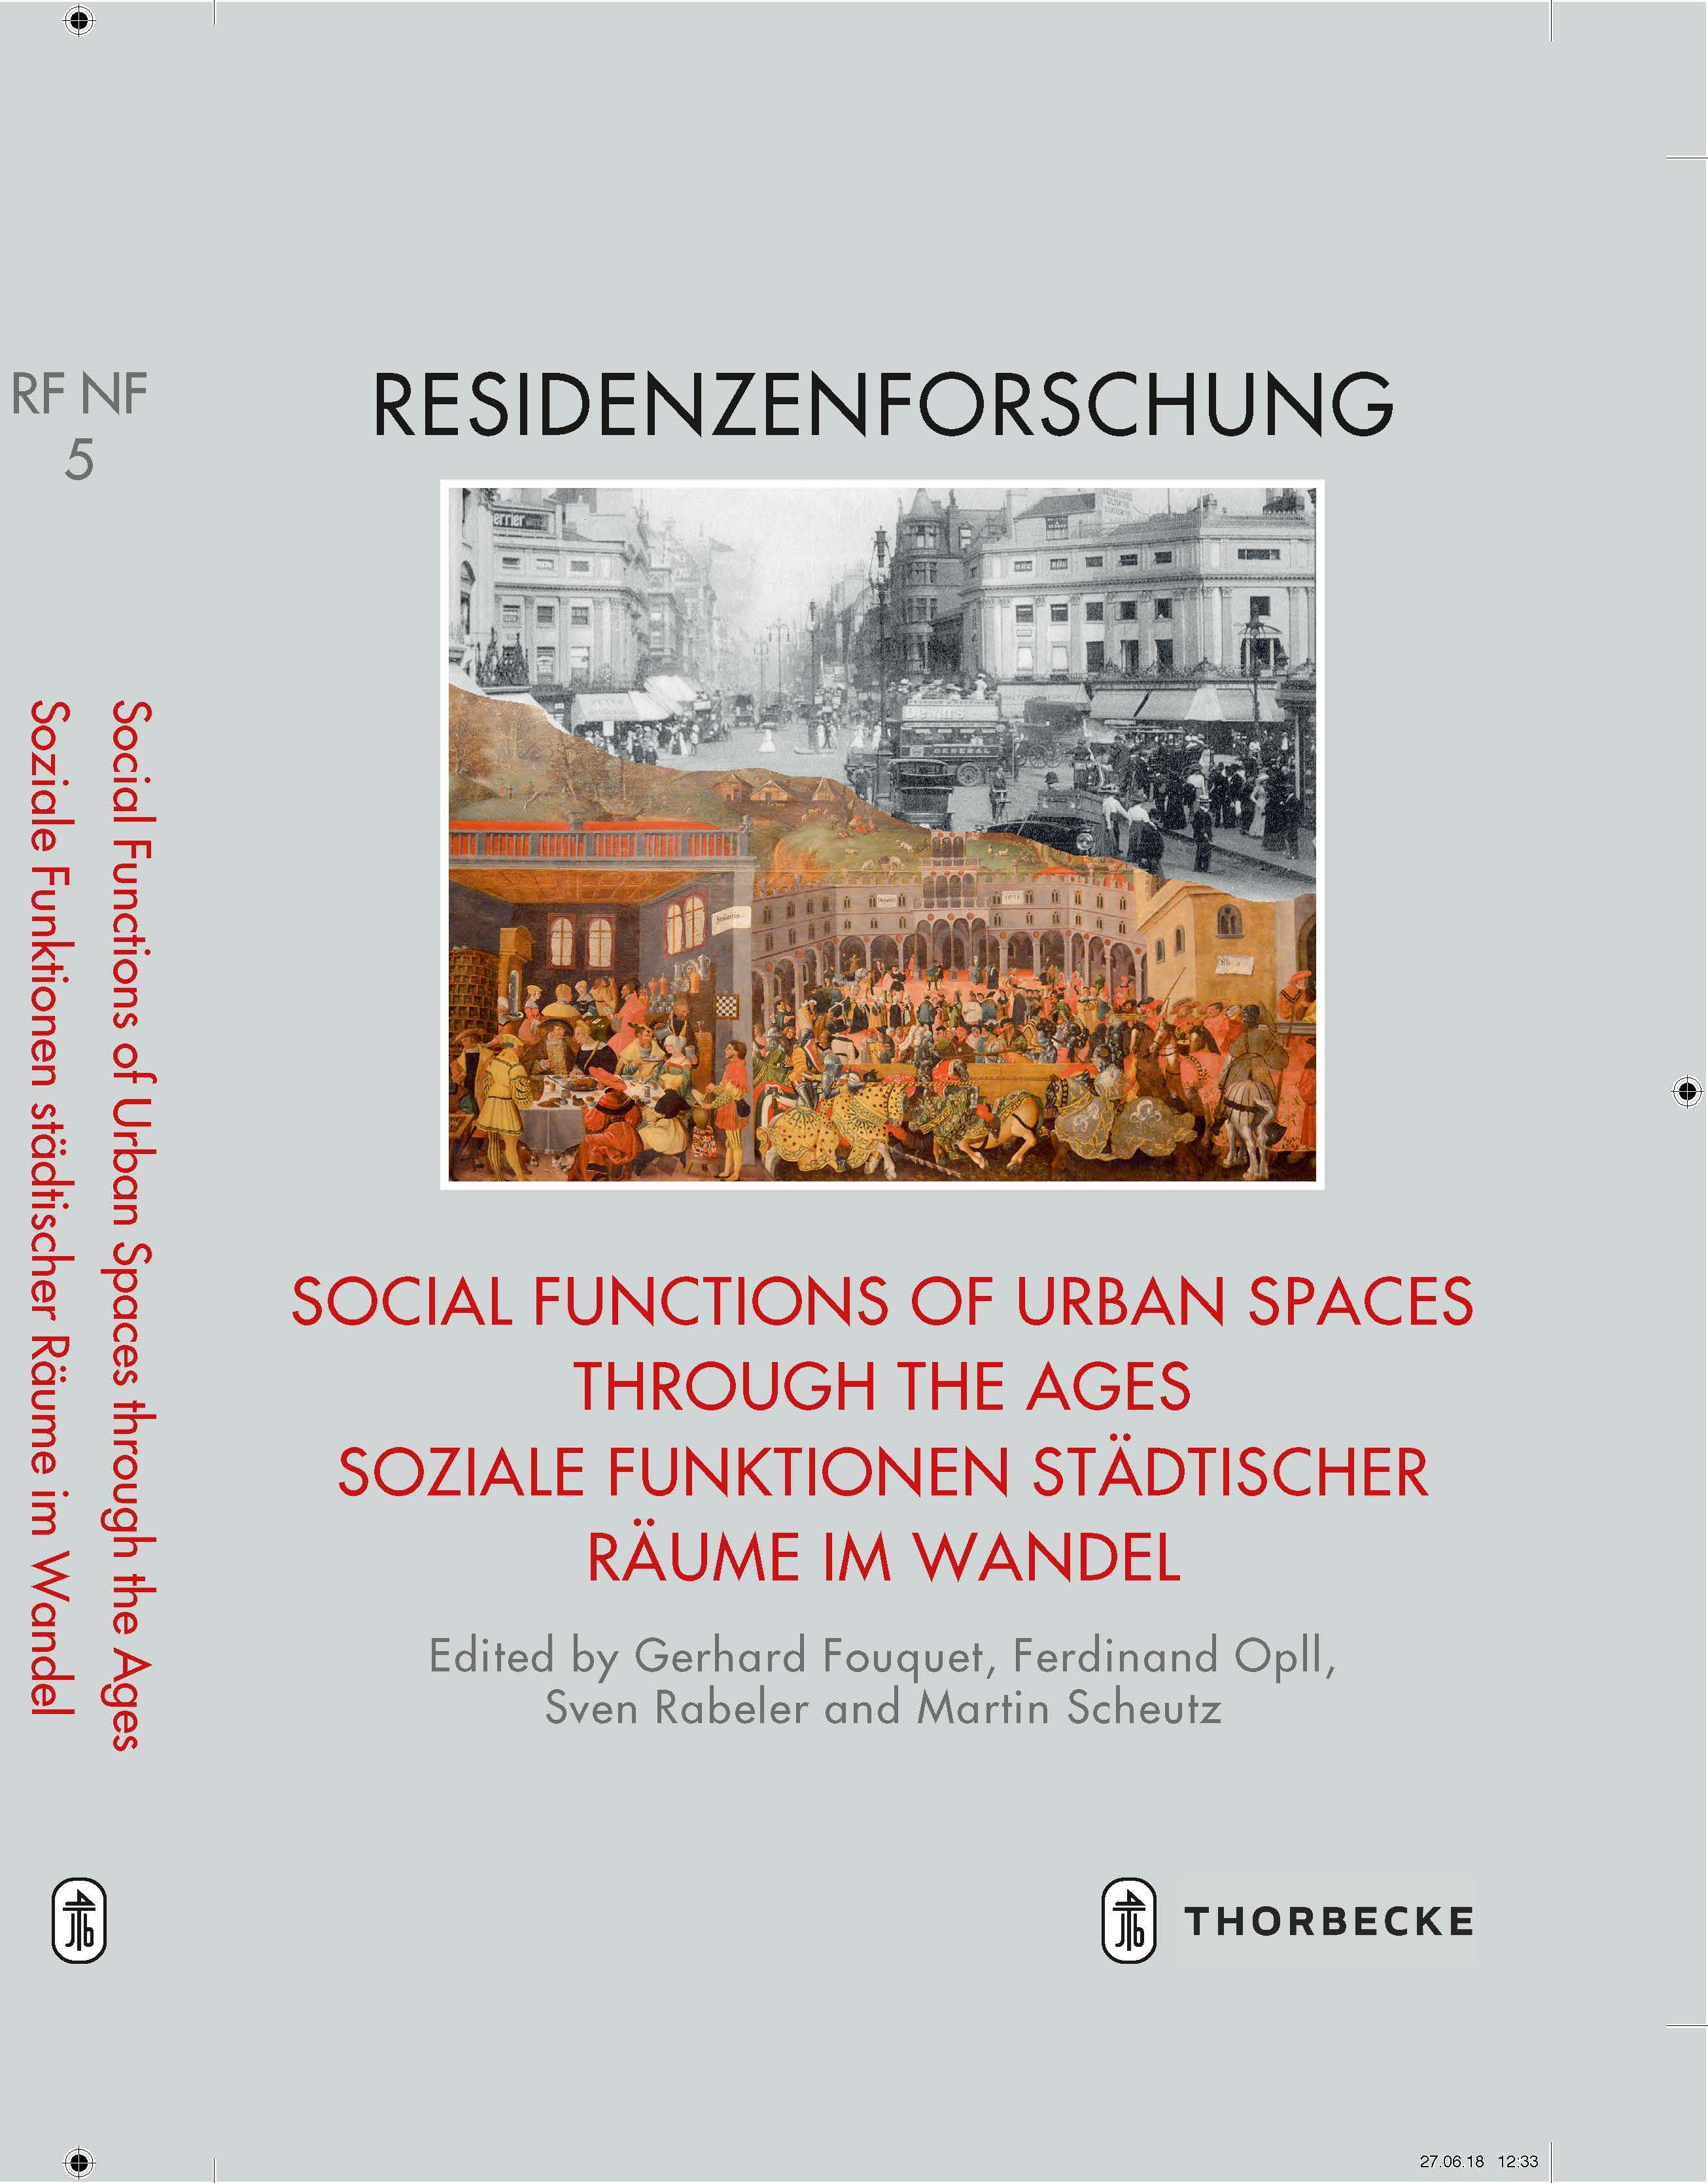 Gerhard FOUQUET, Ferdinand OPLL, Sven RABELER, Martin SCHEUTZ (Hgg.), Social Functions of Urban Spaces through the Ages. Soziale Funktionen städtischer Räume im Wandel. Ostfildern 2018 (Residenzenforschung NF Stadt und Hof  5)